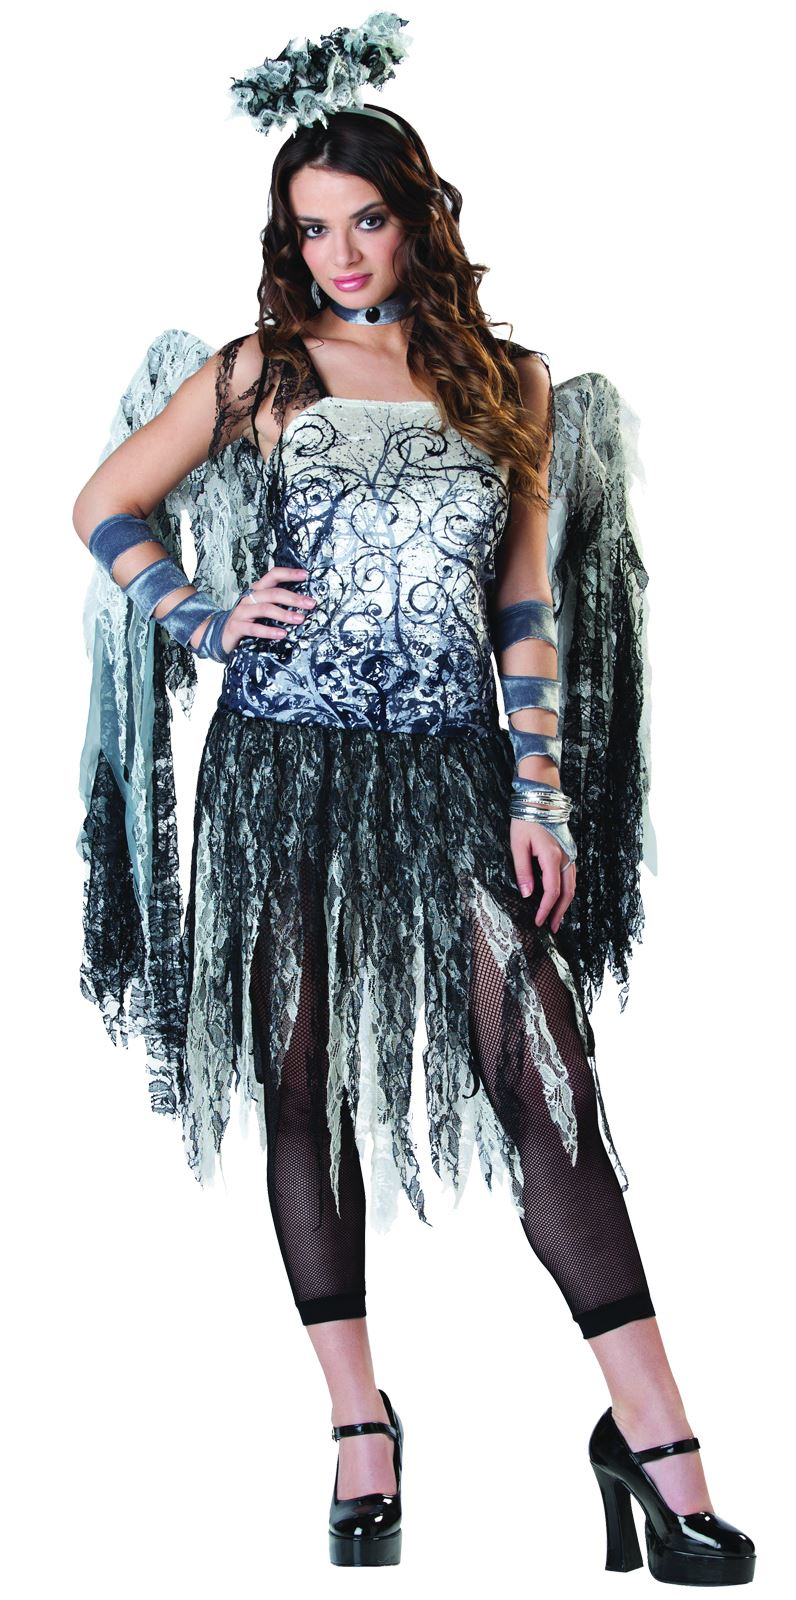 Dark Angel Costume  All Ladies Halloween Costumes  Mega. Living Room Window Treatment Ideas. Above Fireplace Decor. Safe Room Cost. Decorative Laundry Basket. Vintage Wedding Decorations Ideas. 2 Panel Room Divider. Unique Office Decor. Escape Room Deals